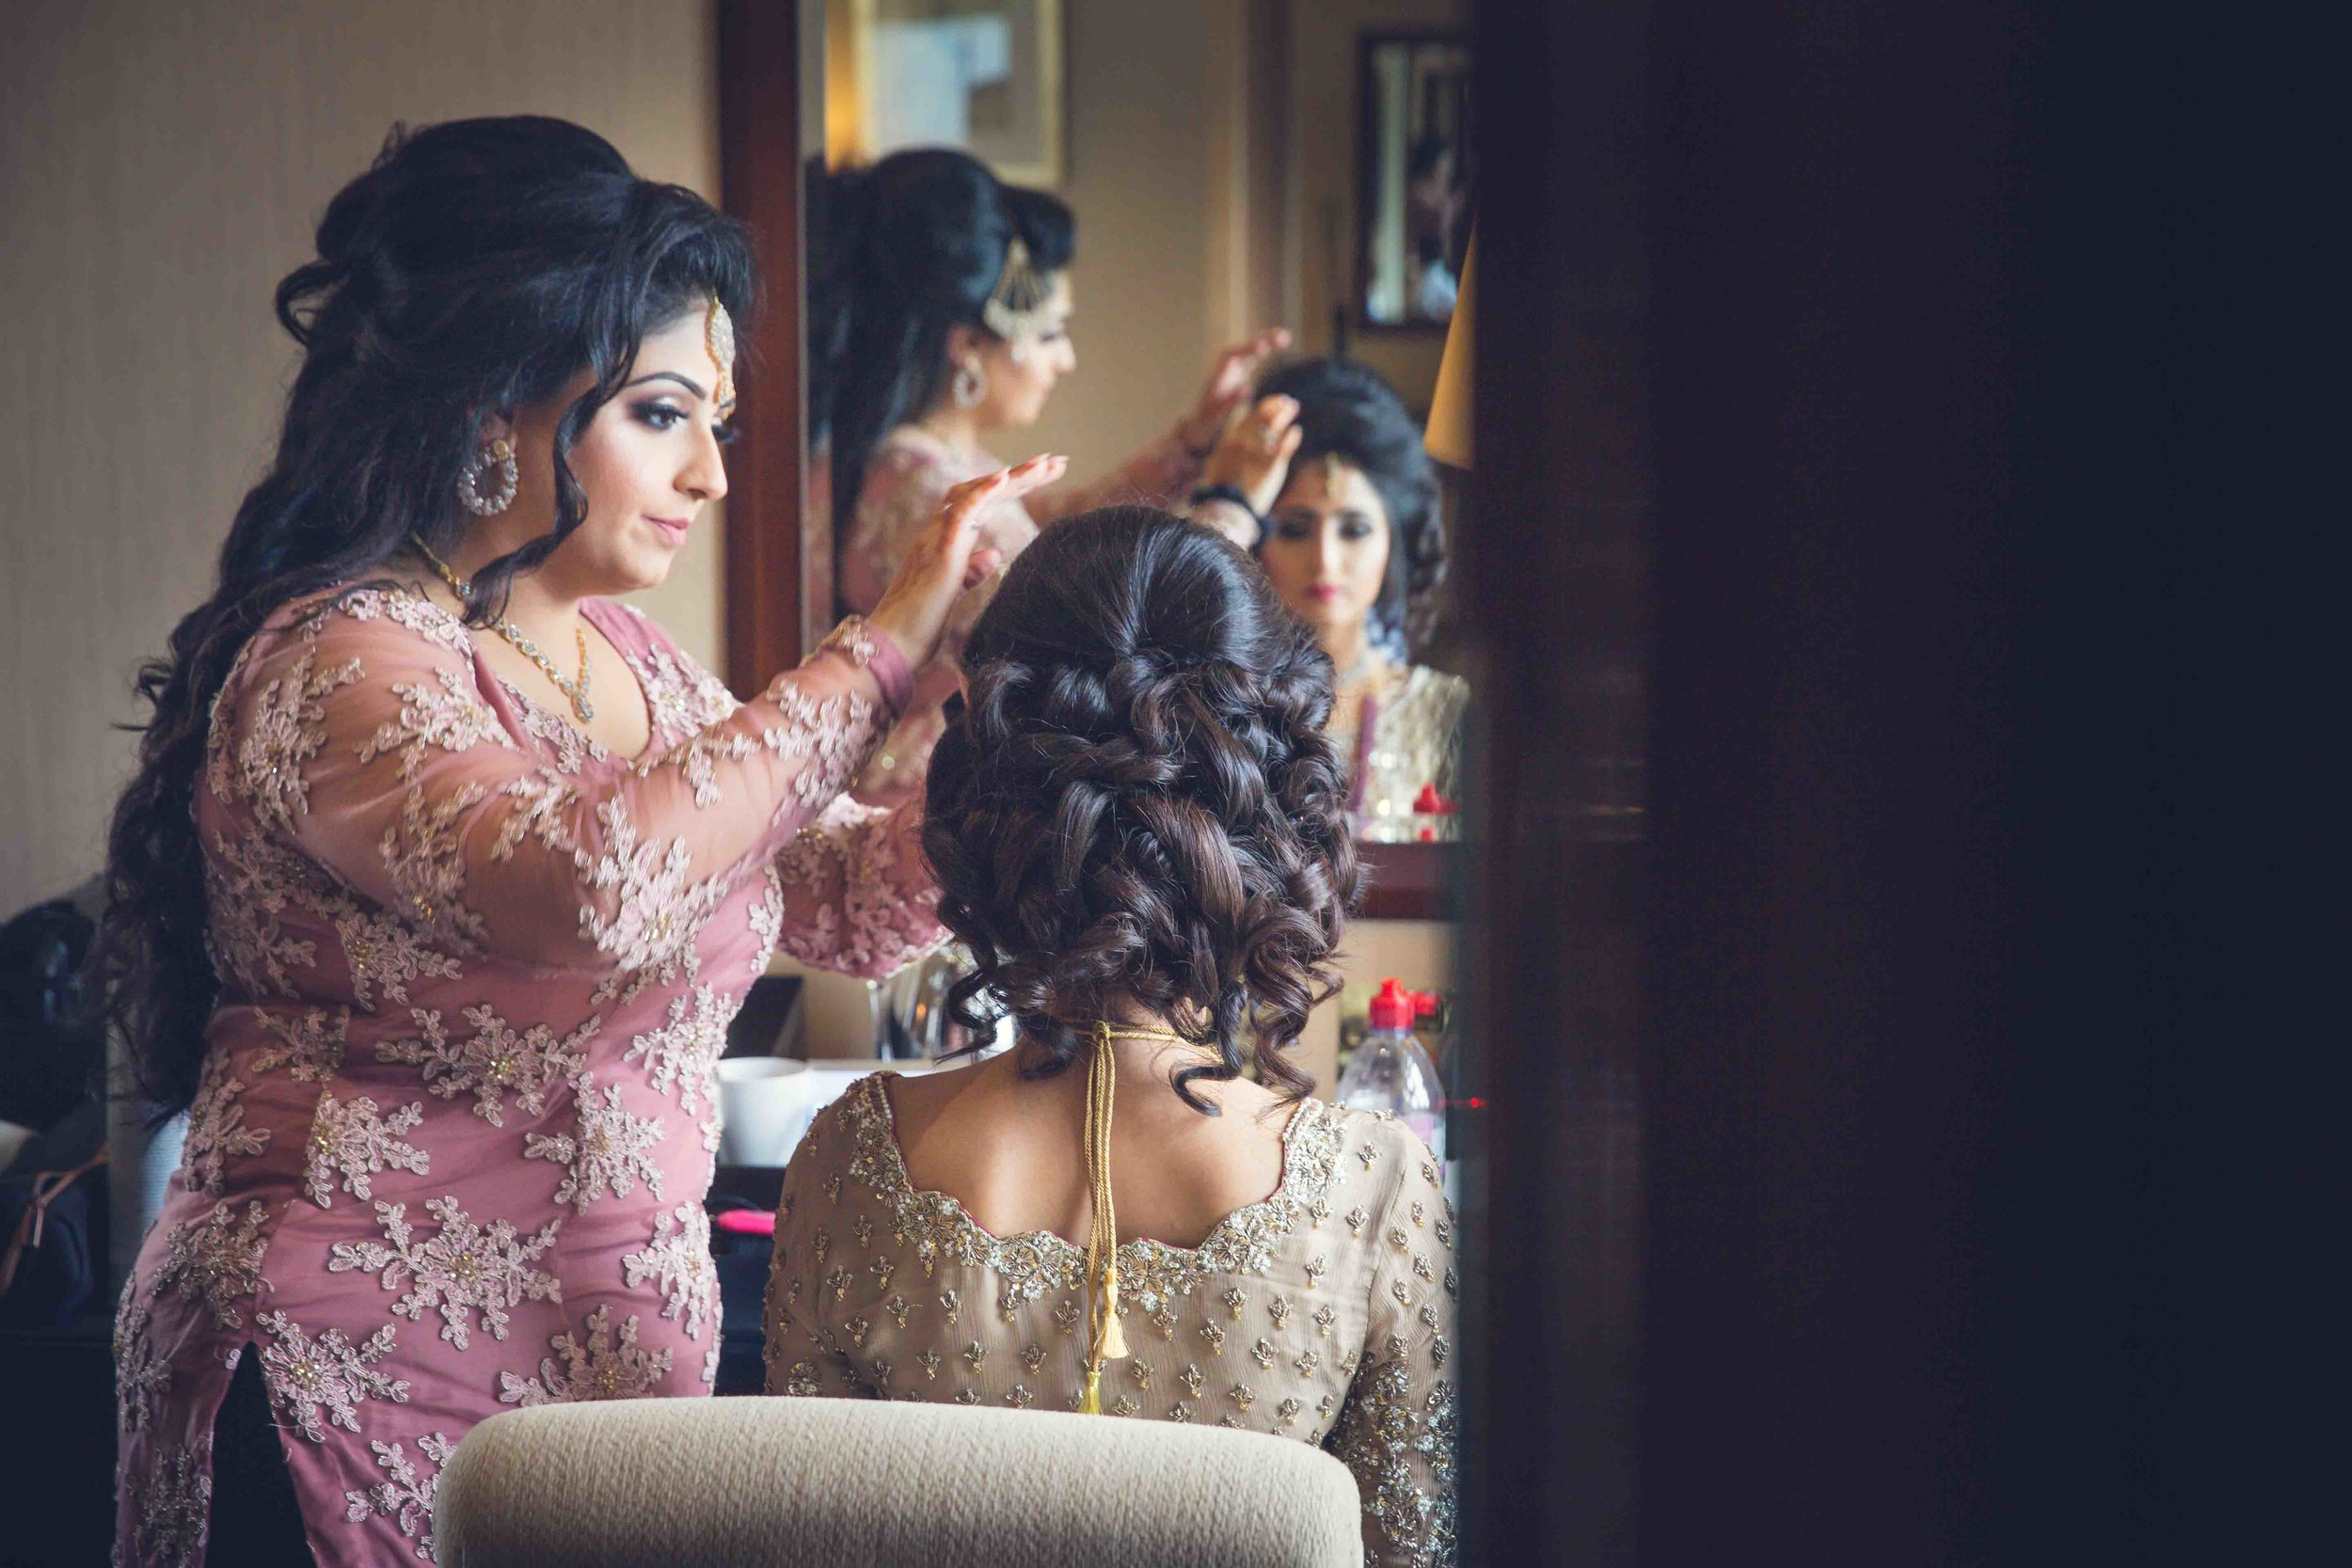 Opu Sultan Photography Asian wedding photography scotland edinburgh glasgow manchester birmingham london-236.jpg